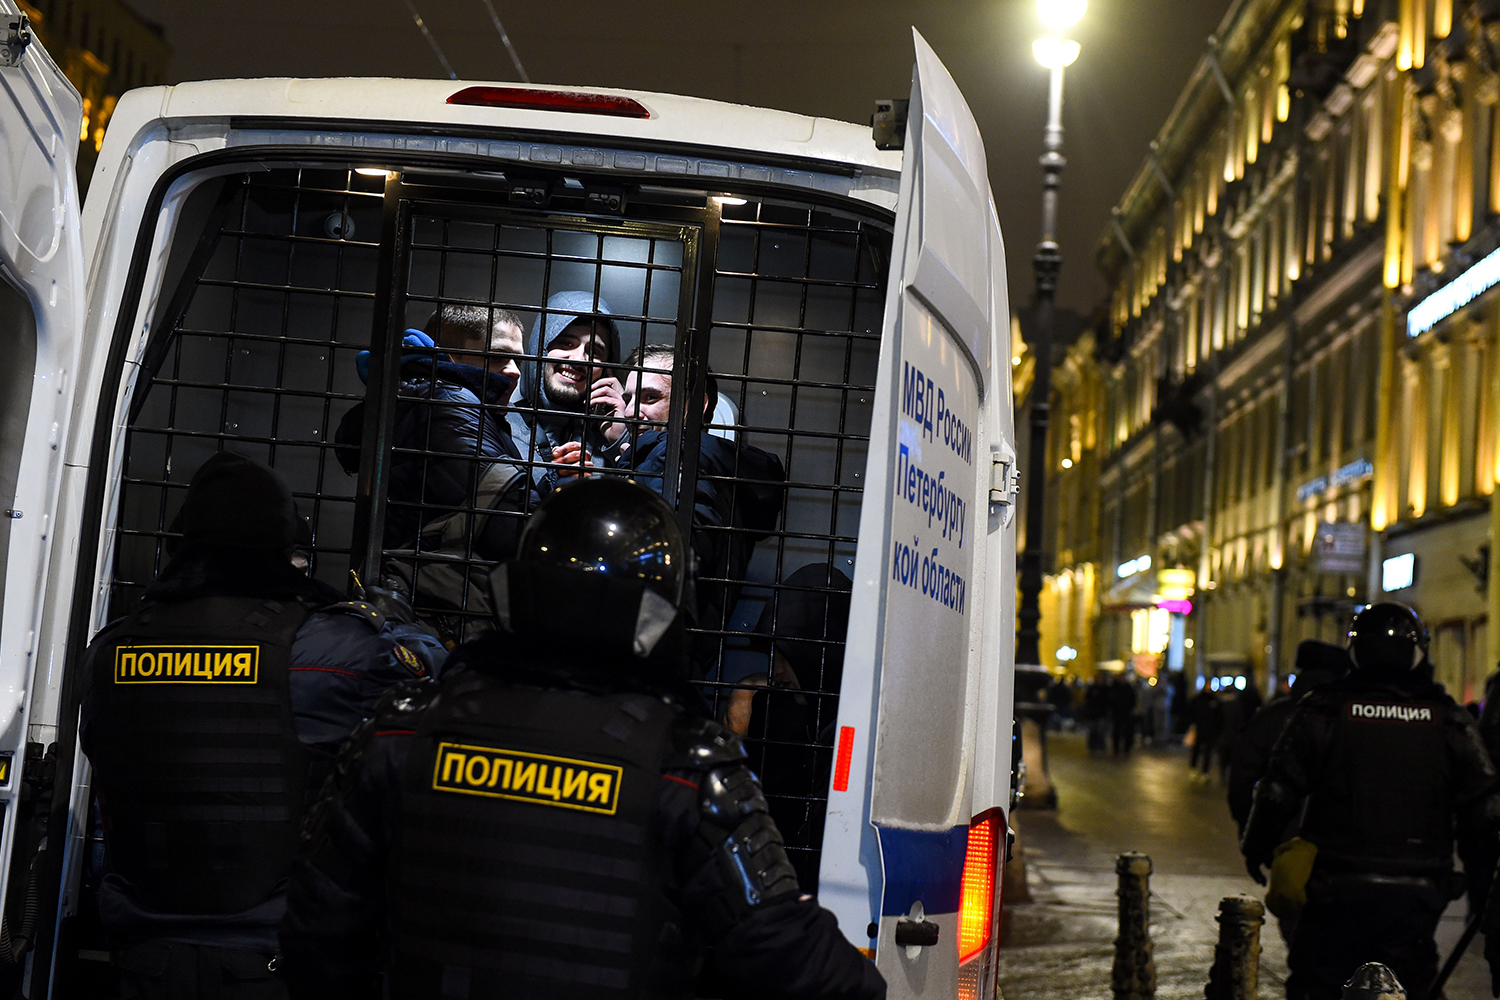 Detained men look out from a police vehicle in downtown St. Petersburg, Russia, on Feb. 2 during a protest against a court ruling that ordered Russian opposition leader Alexei Navalny jailed for nearly three years. OLGA MALTSEVA/AFP via Getty Images